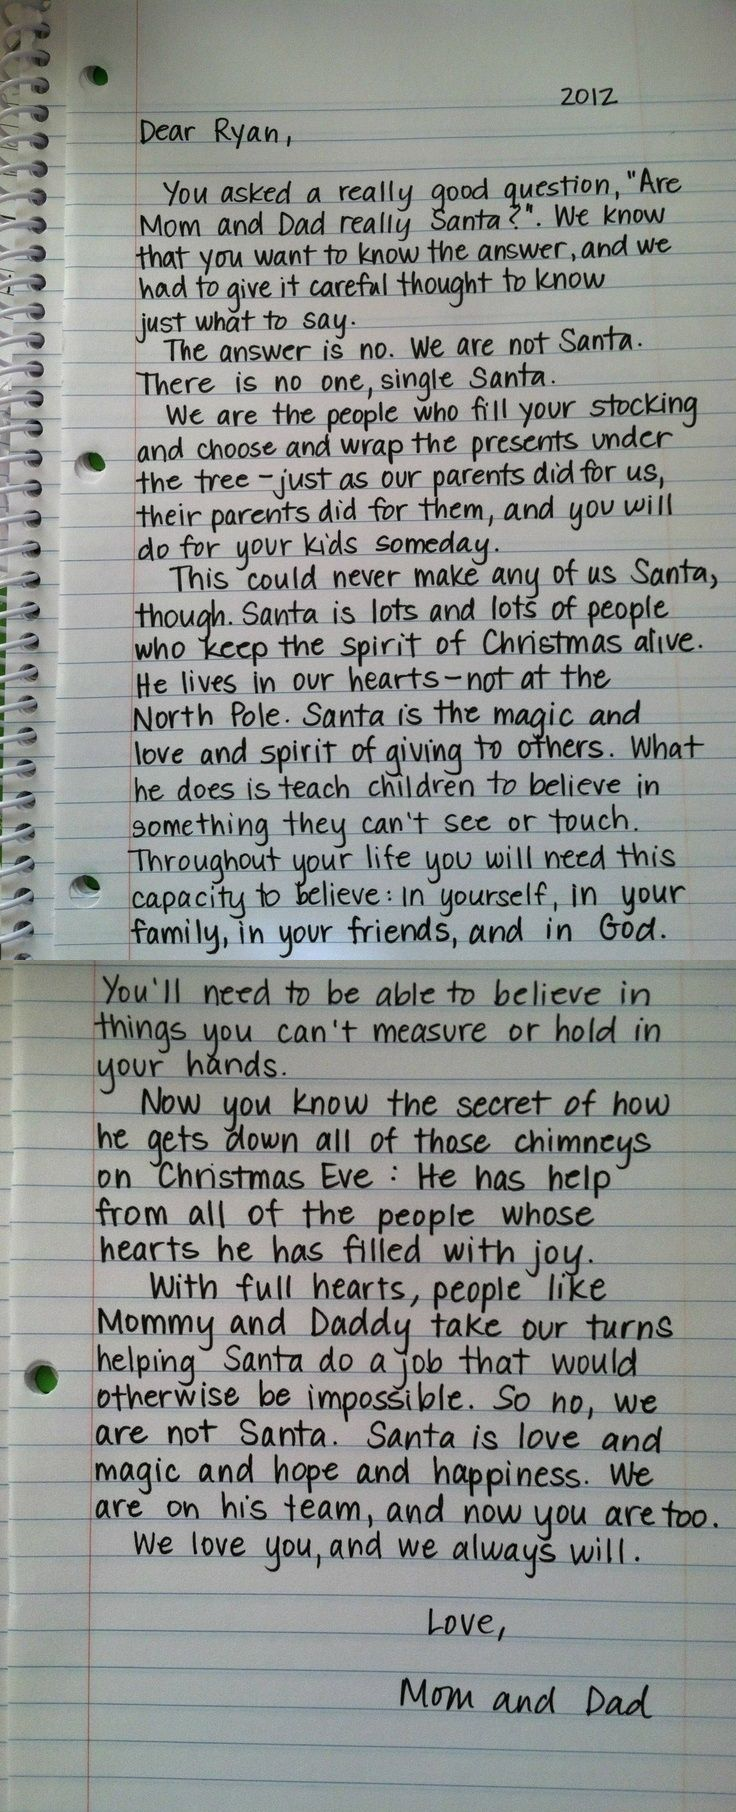 Sweet way to tell a child the truth about Santa Original letter